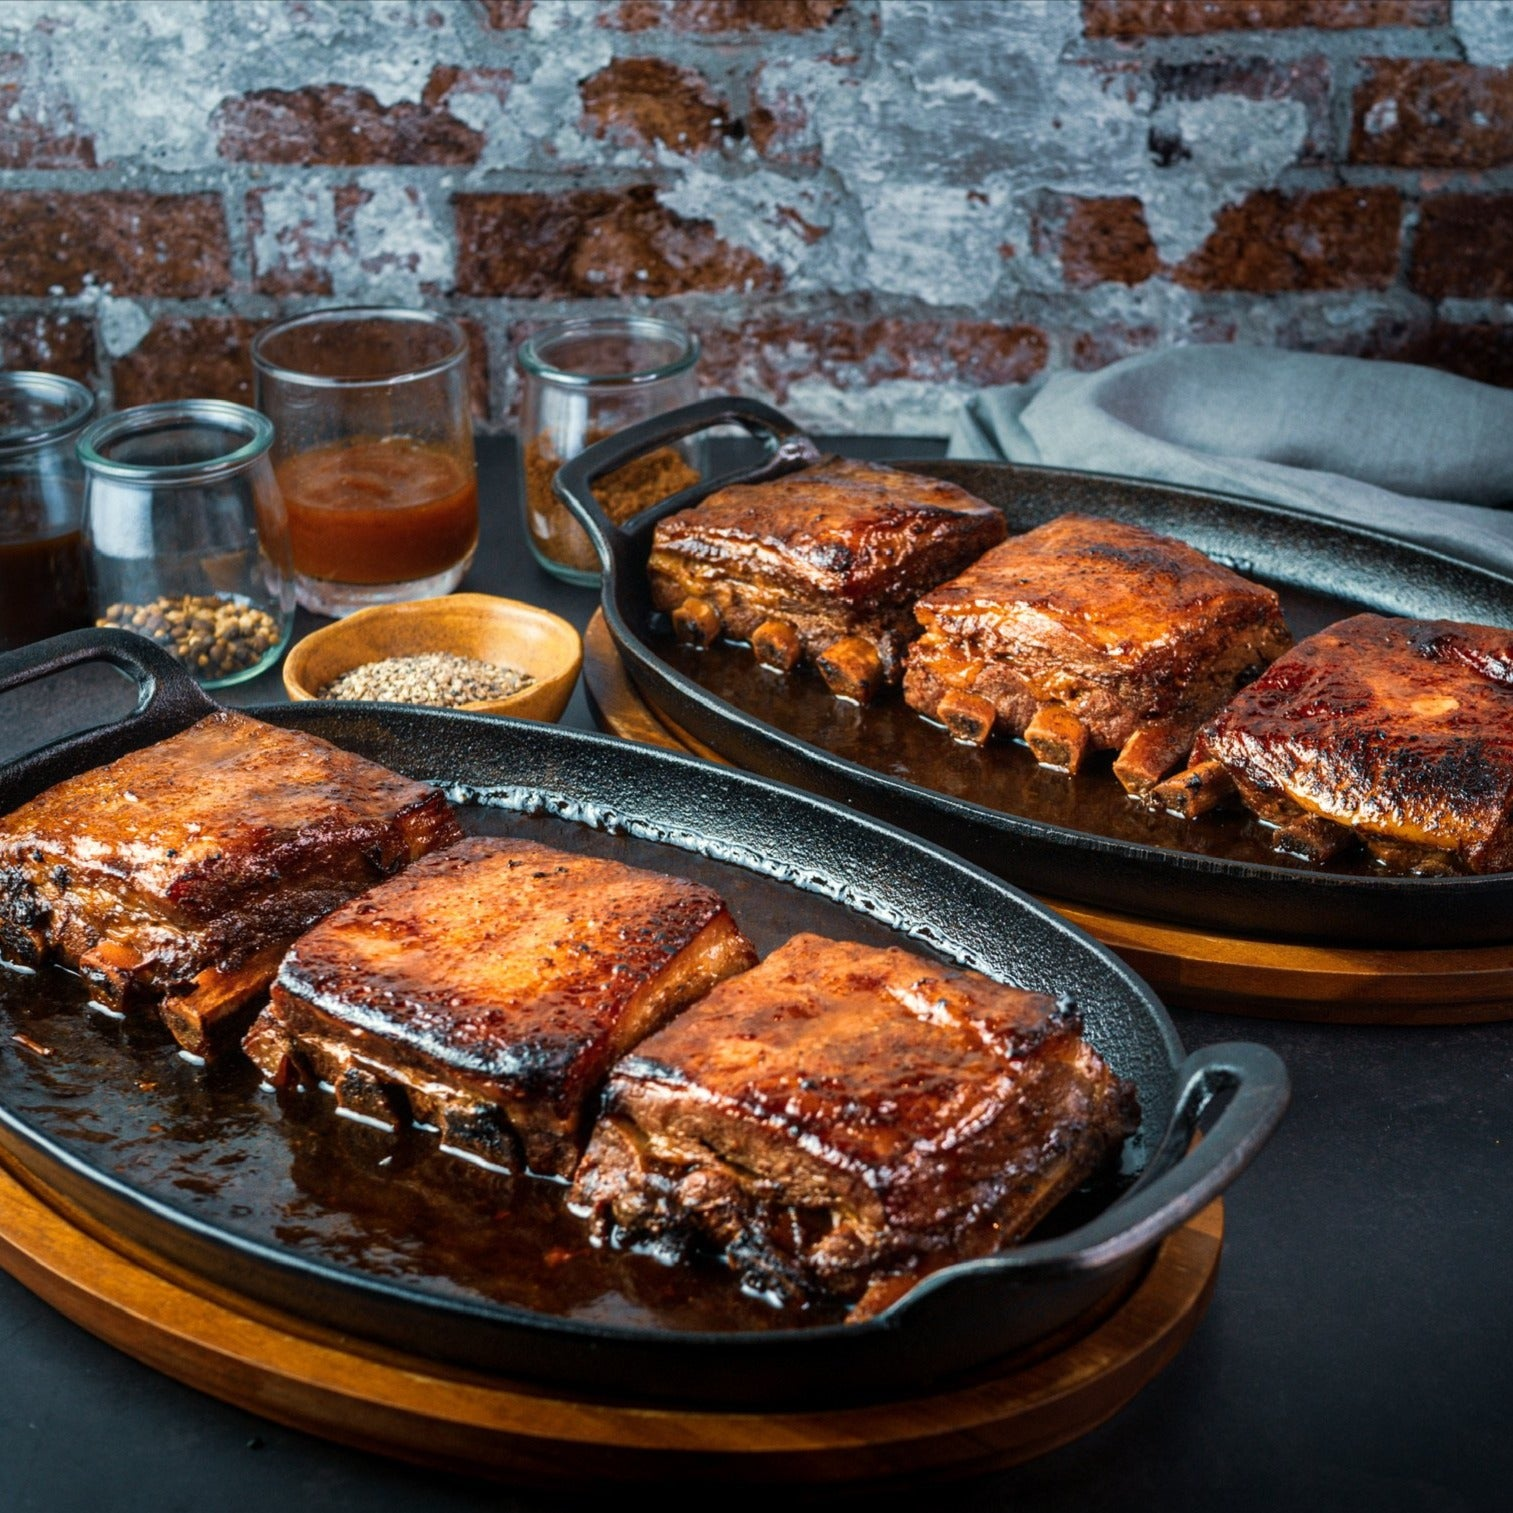 Biggs Ribs 6-PC (Approx. 1500g)